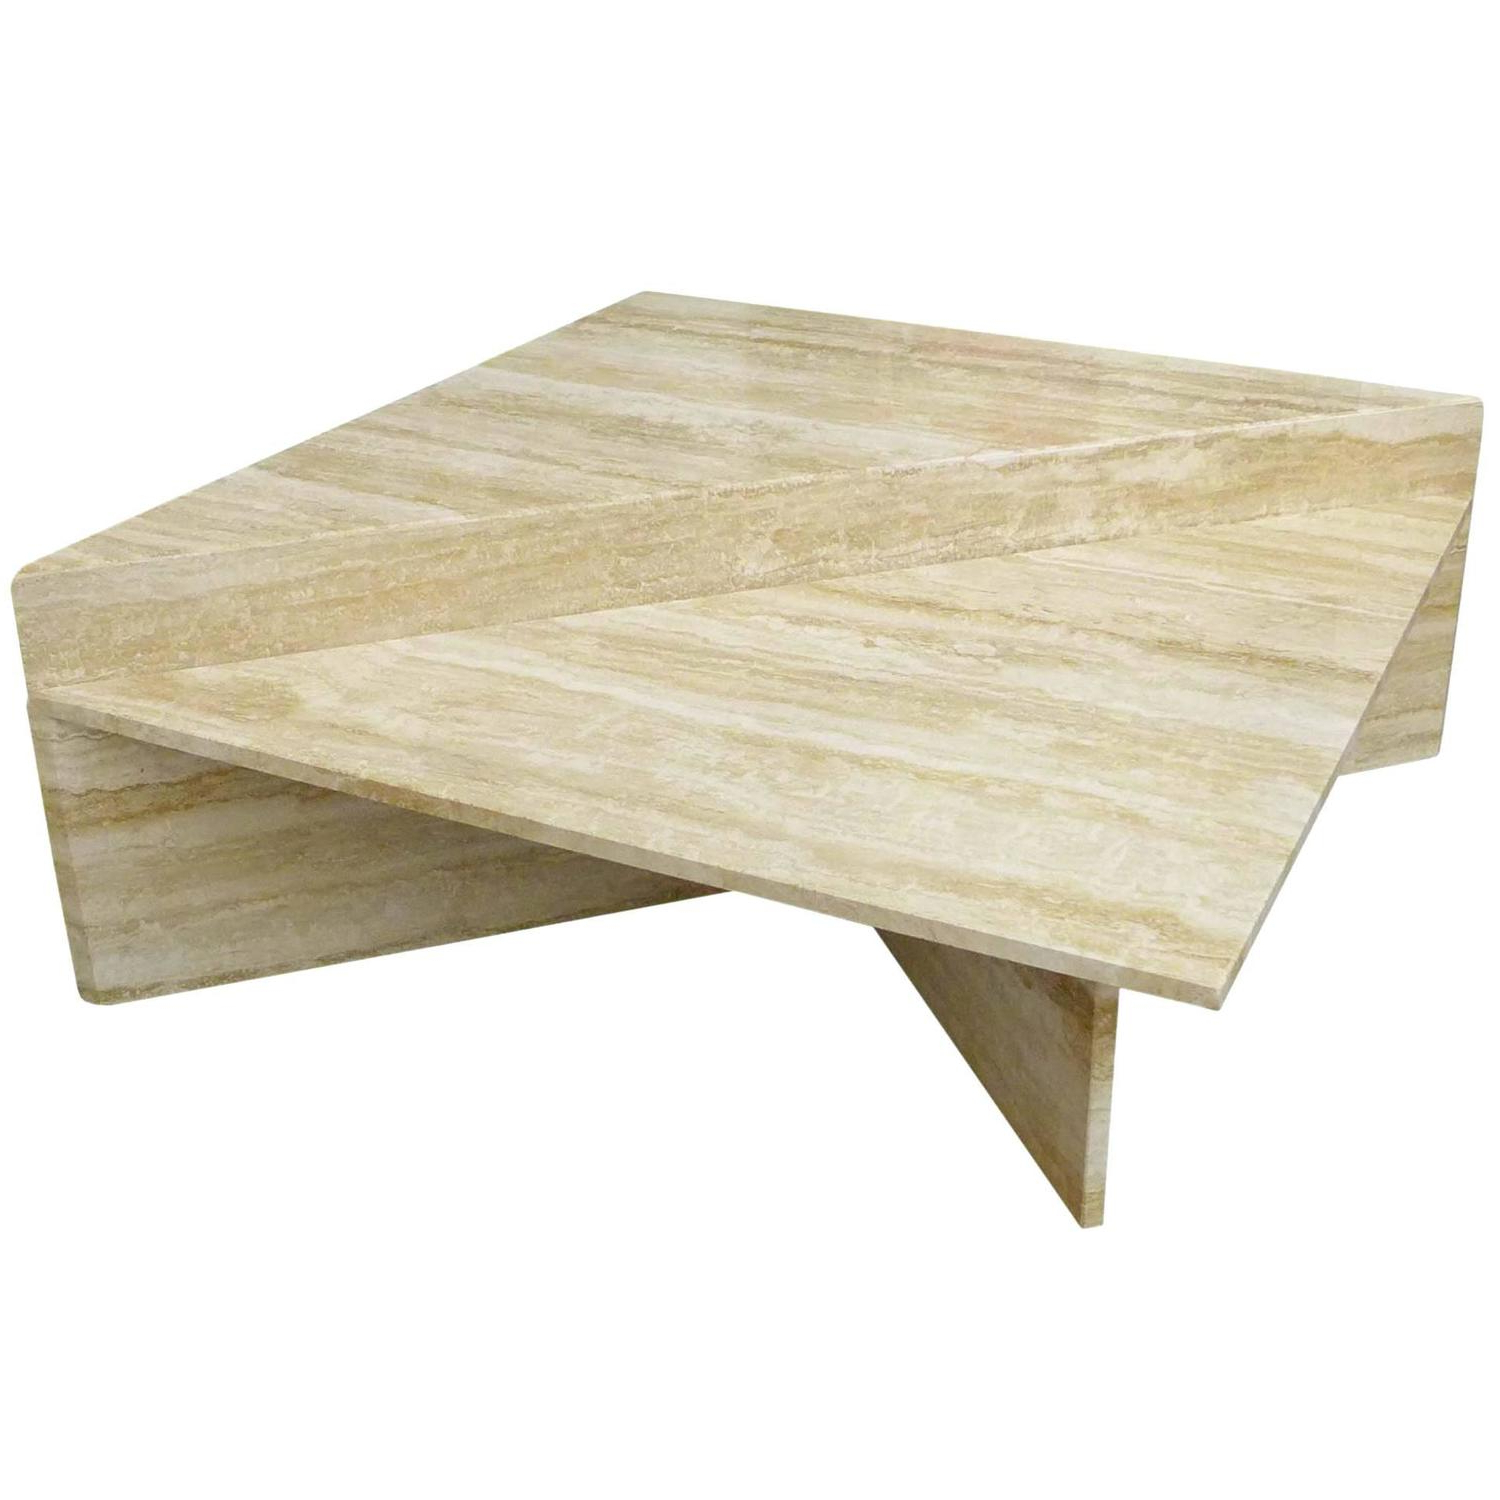 Two Piece Modular Travertine Coffee Table At 1Stdibs Pertaining To Most Current Modular Coffee Tables (View 19 of 20)